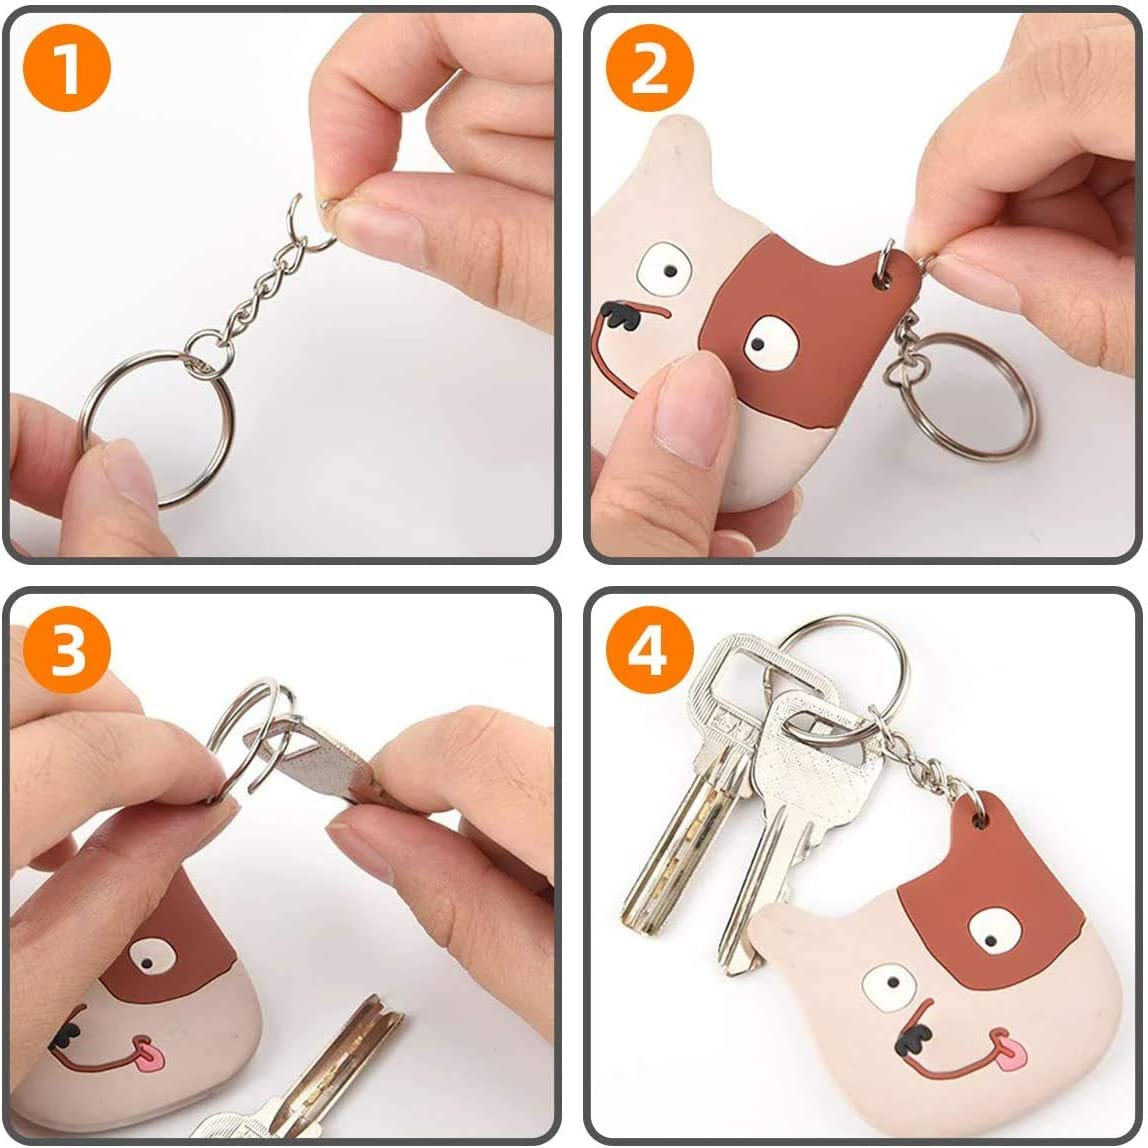 Suitable for Crafts Xinmeng 100 Pieces Key Ring Key Chain Rings Split Keyrings with Link Chain and Jump RingsMetal Rings Jewelry Making Resin DIY and So On 25 mm Diameter